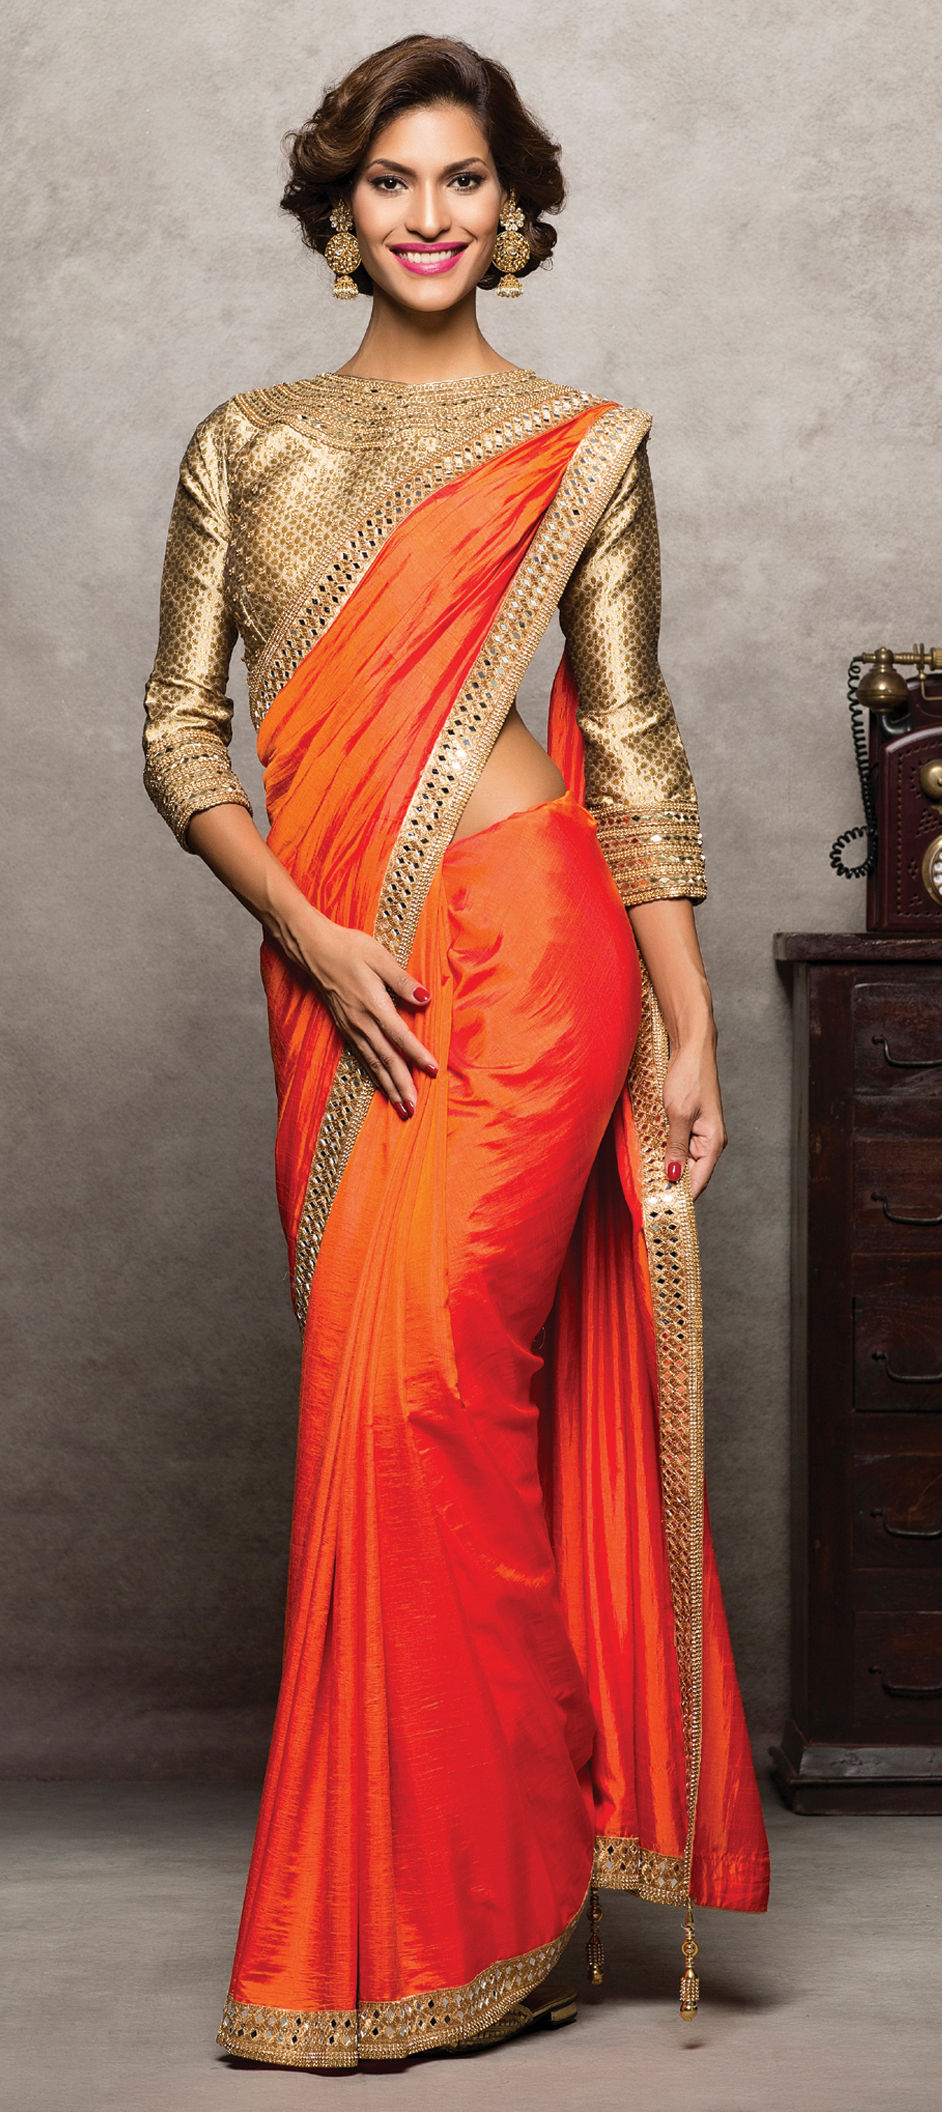 c2edfd0b0f5ed8 723896  Orange color family Party Wear Sarees